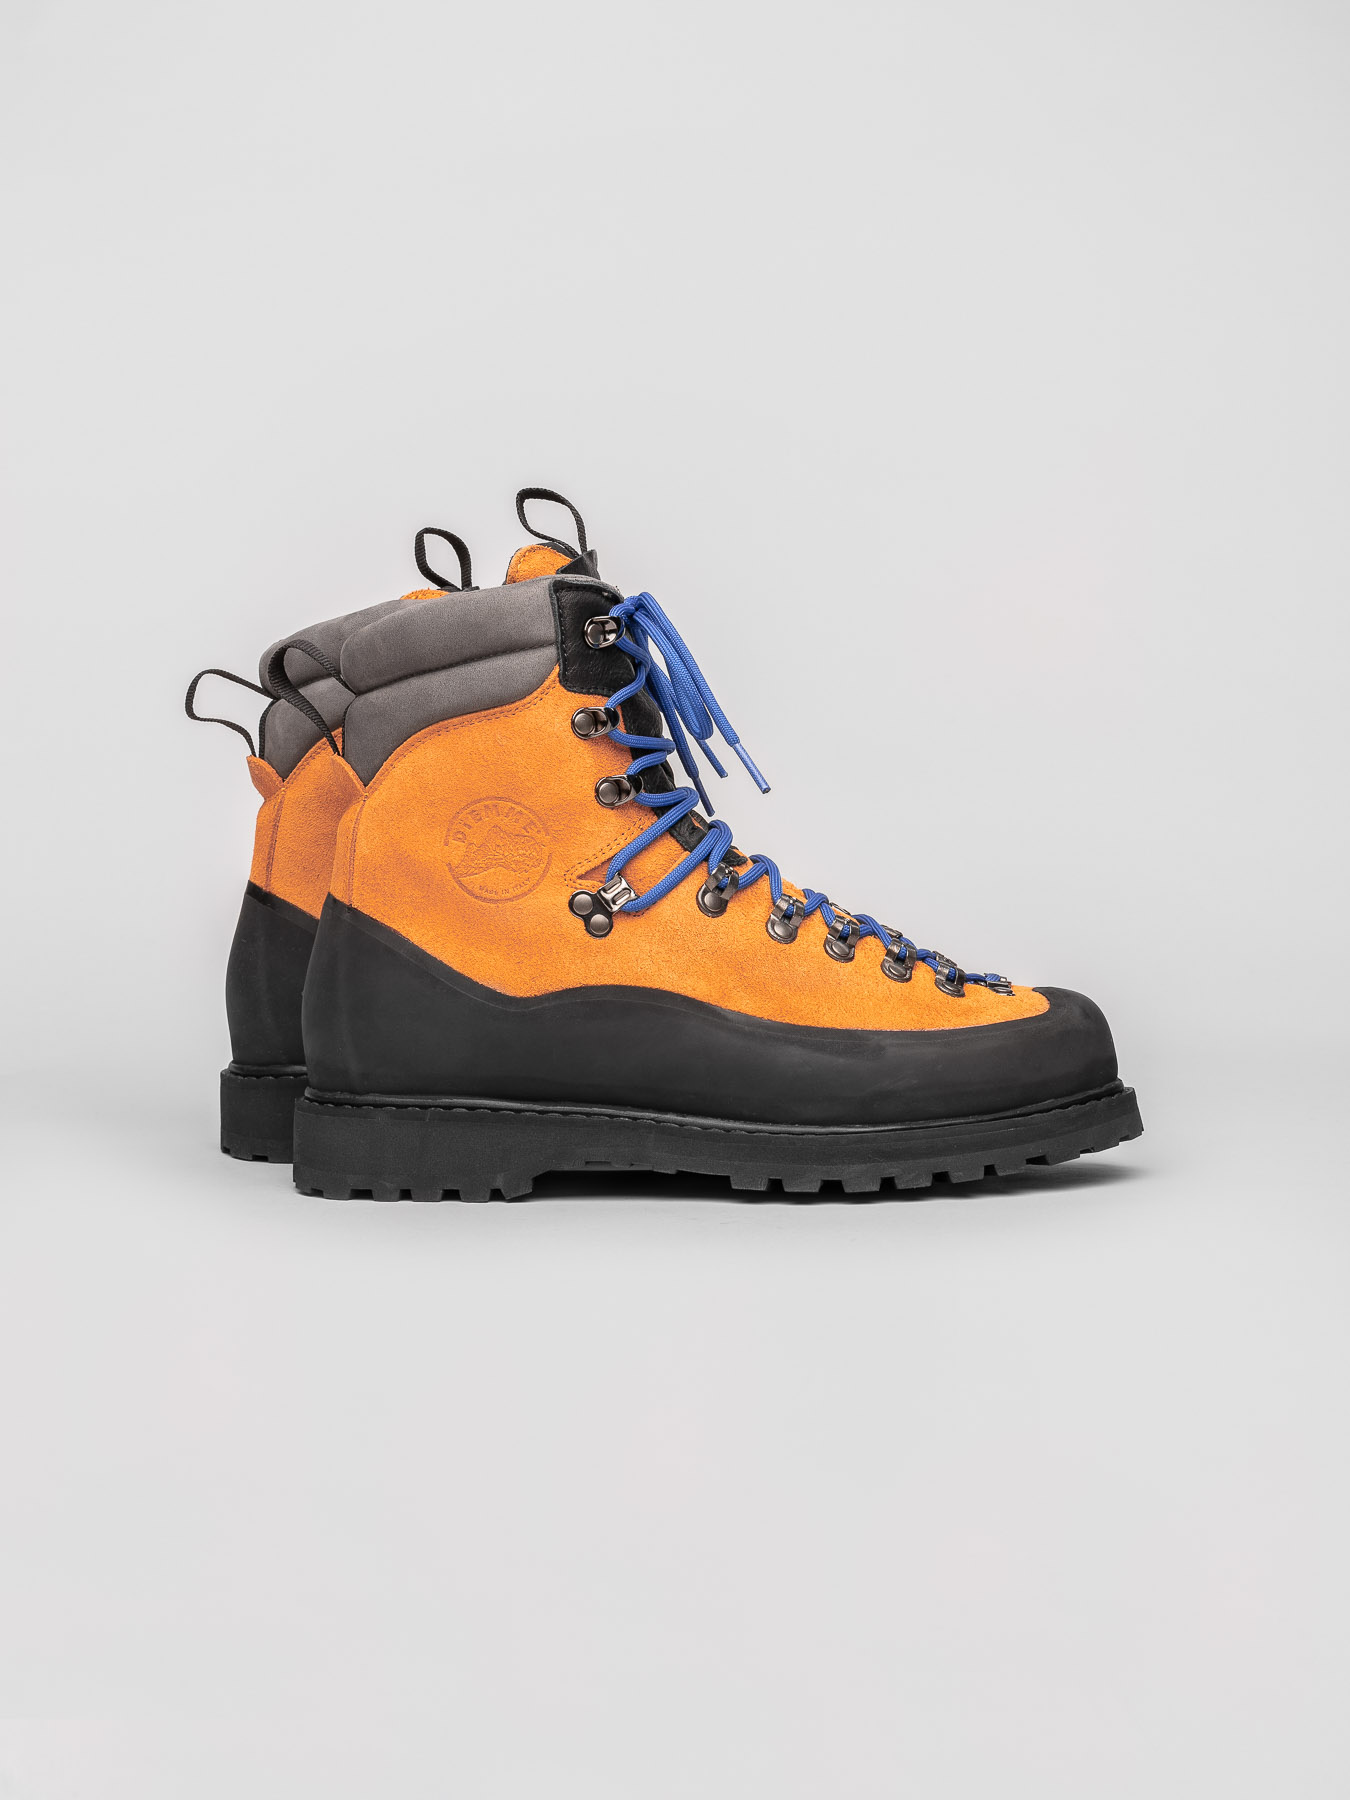 Diemme - Everest Orange - Women High-Altitude Boots